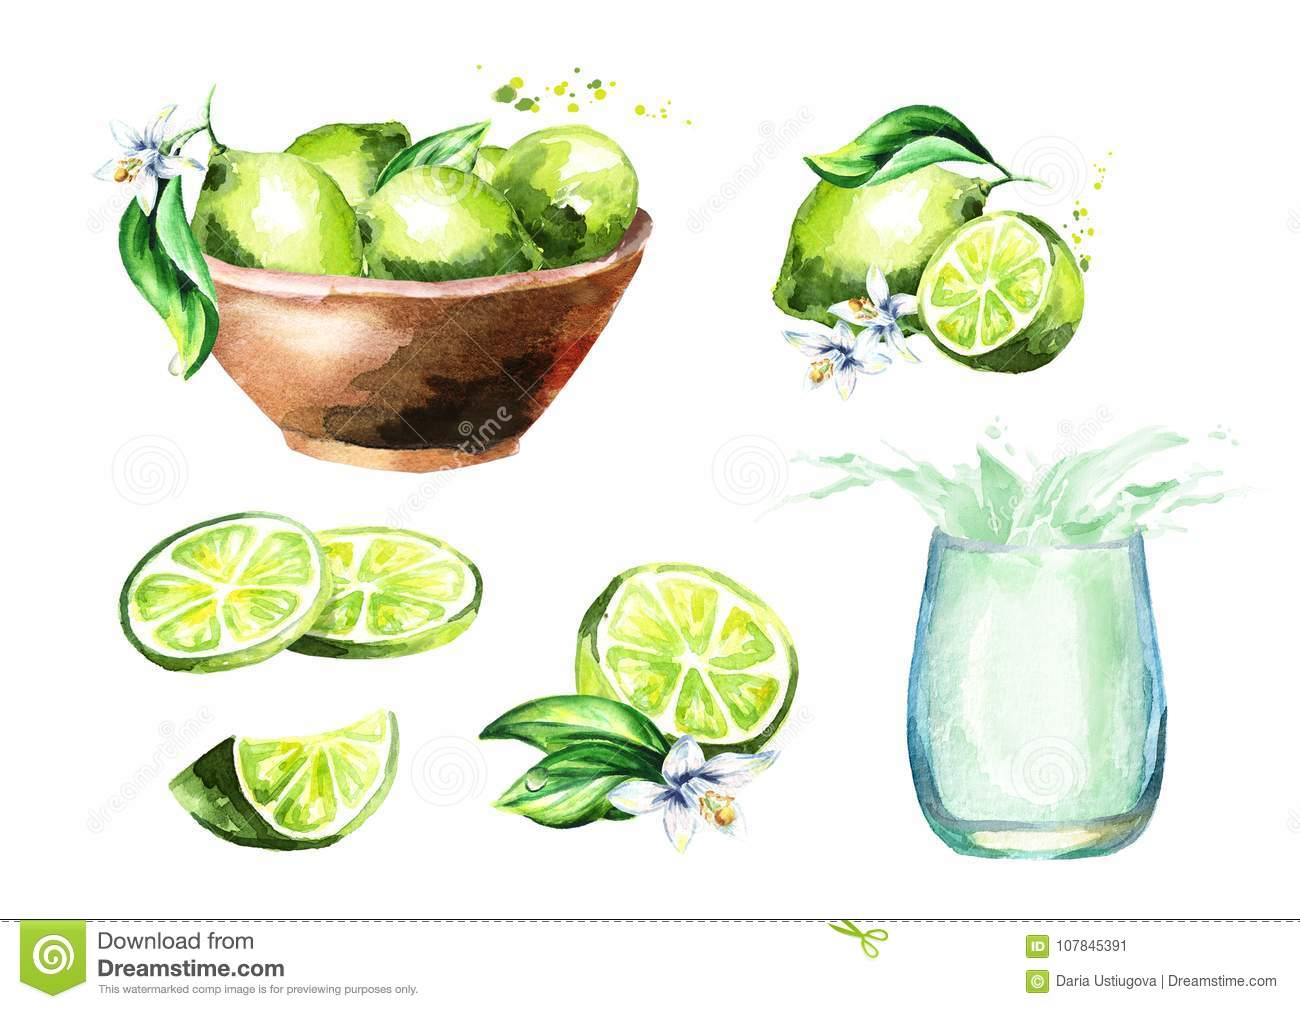 Lime set. Watercolor hand drawn illustration.